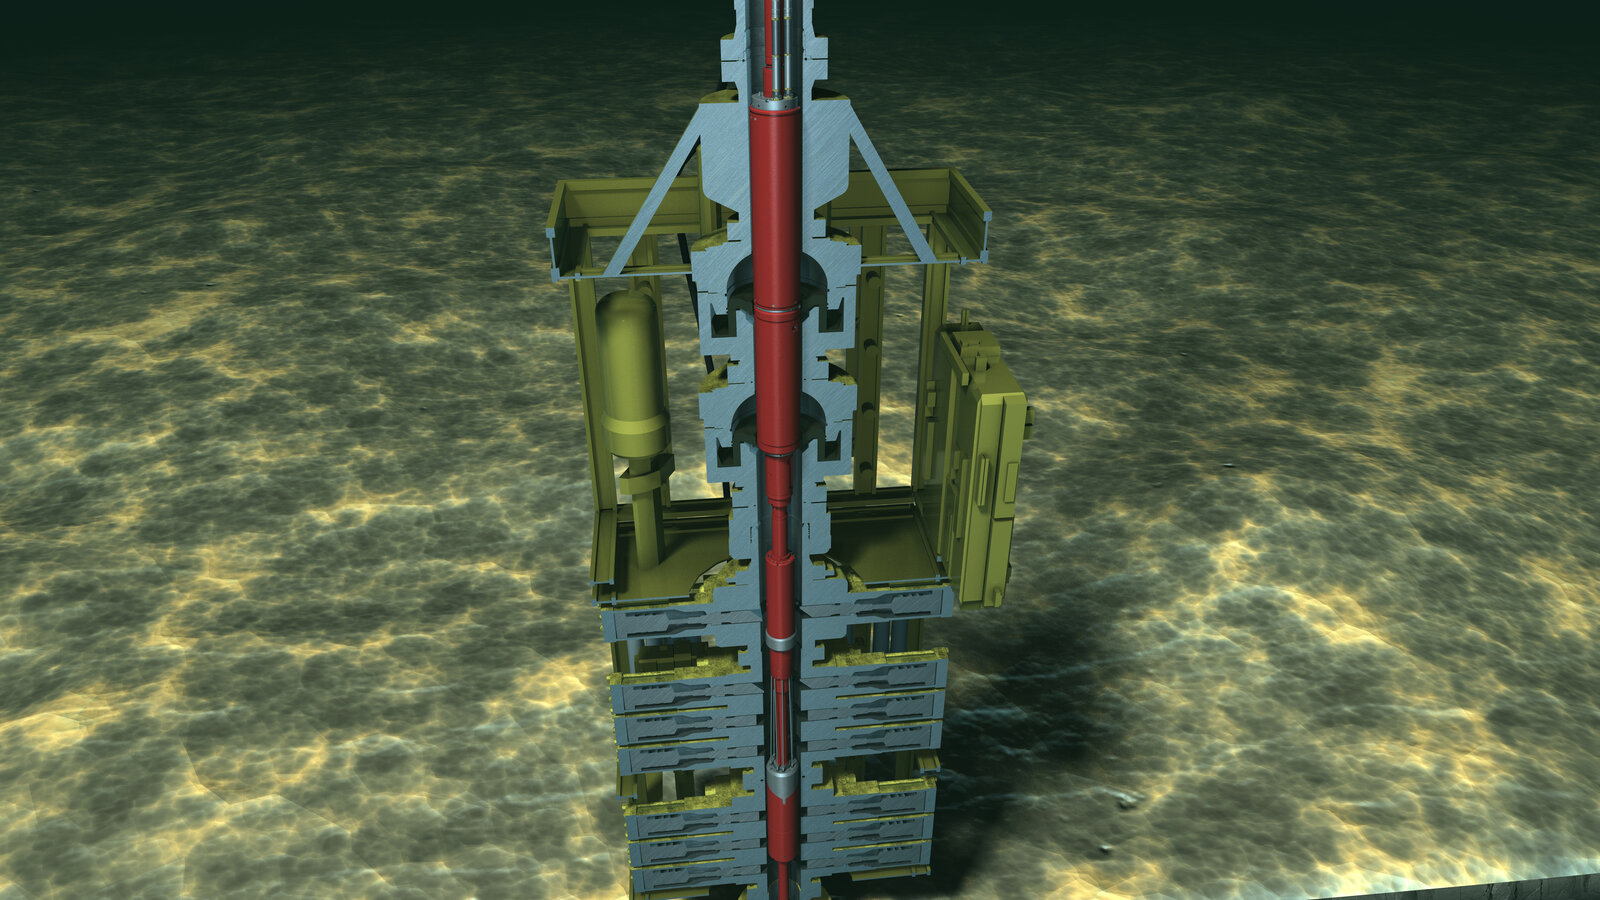 Dash® EH Subsea Safety Systems